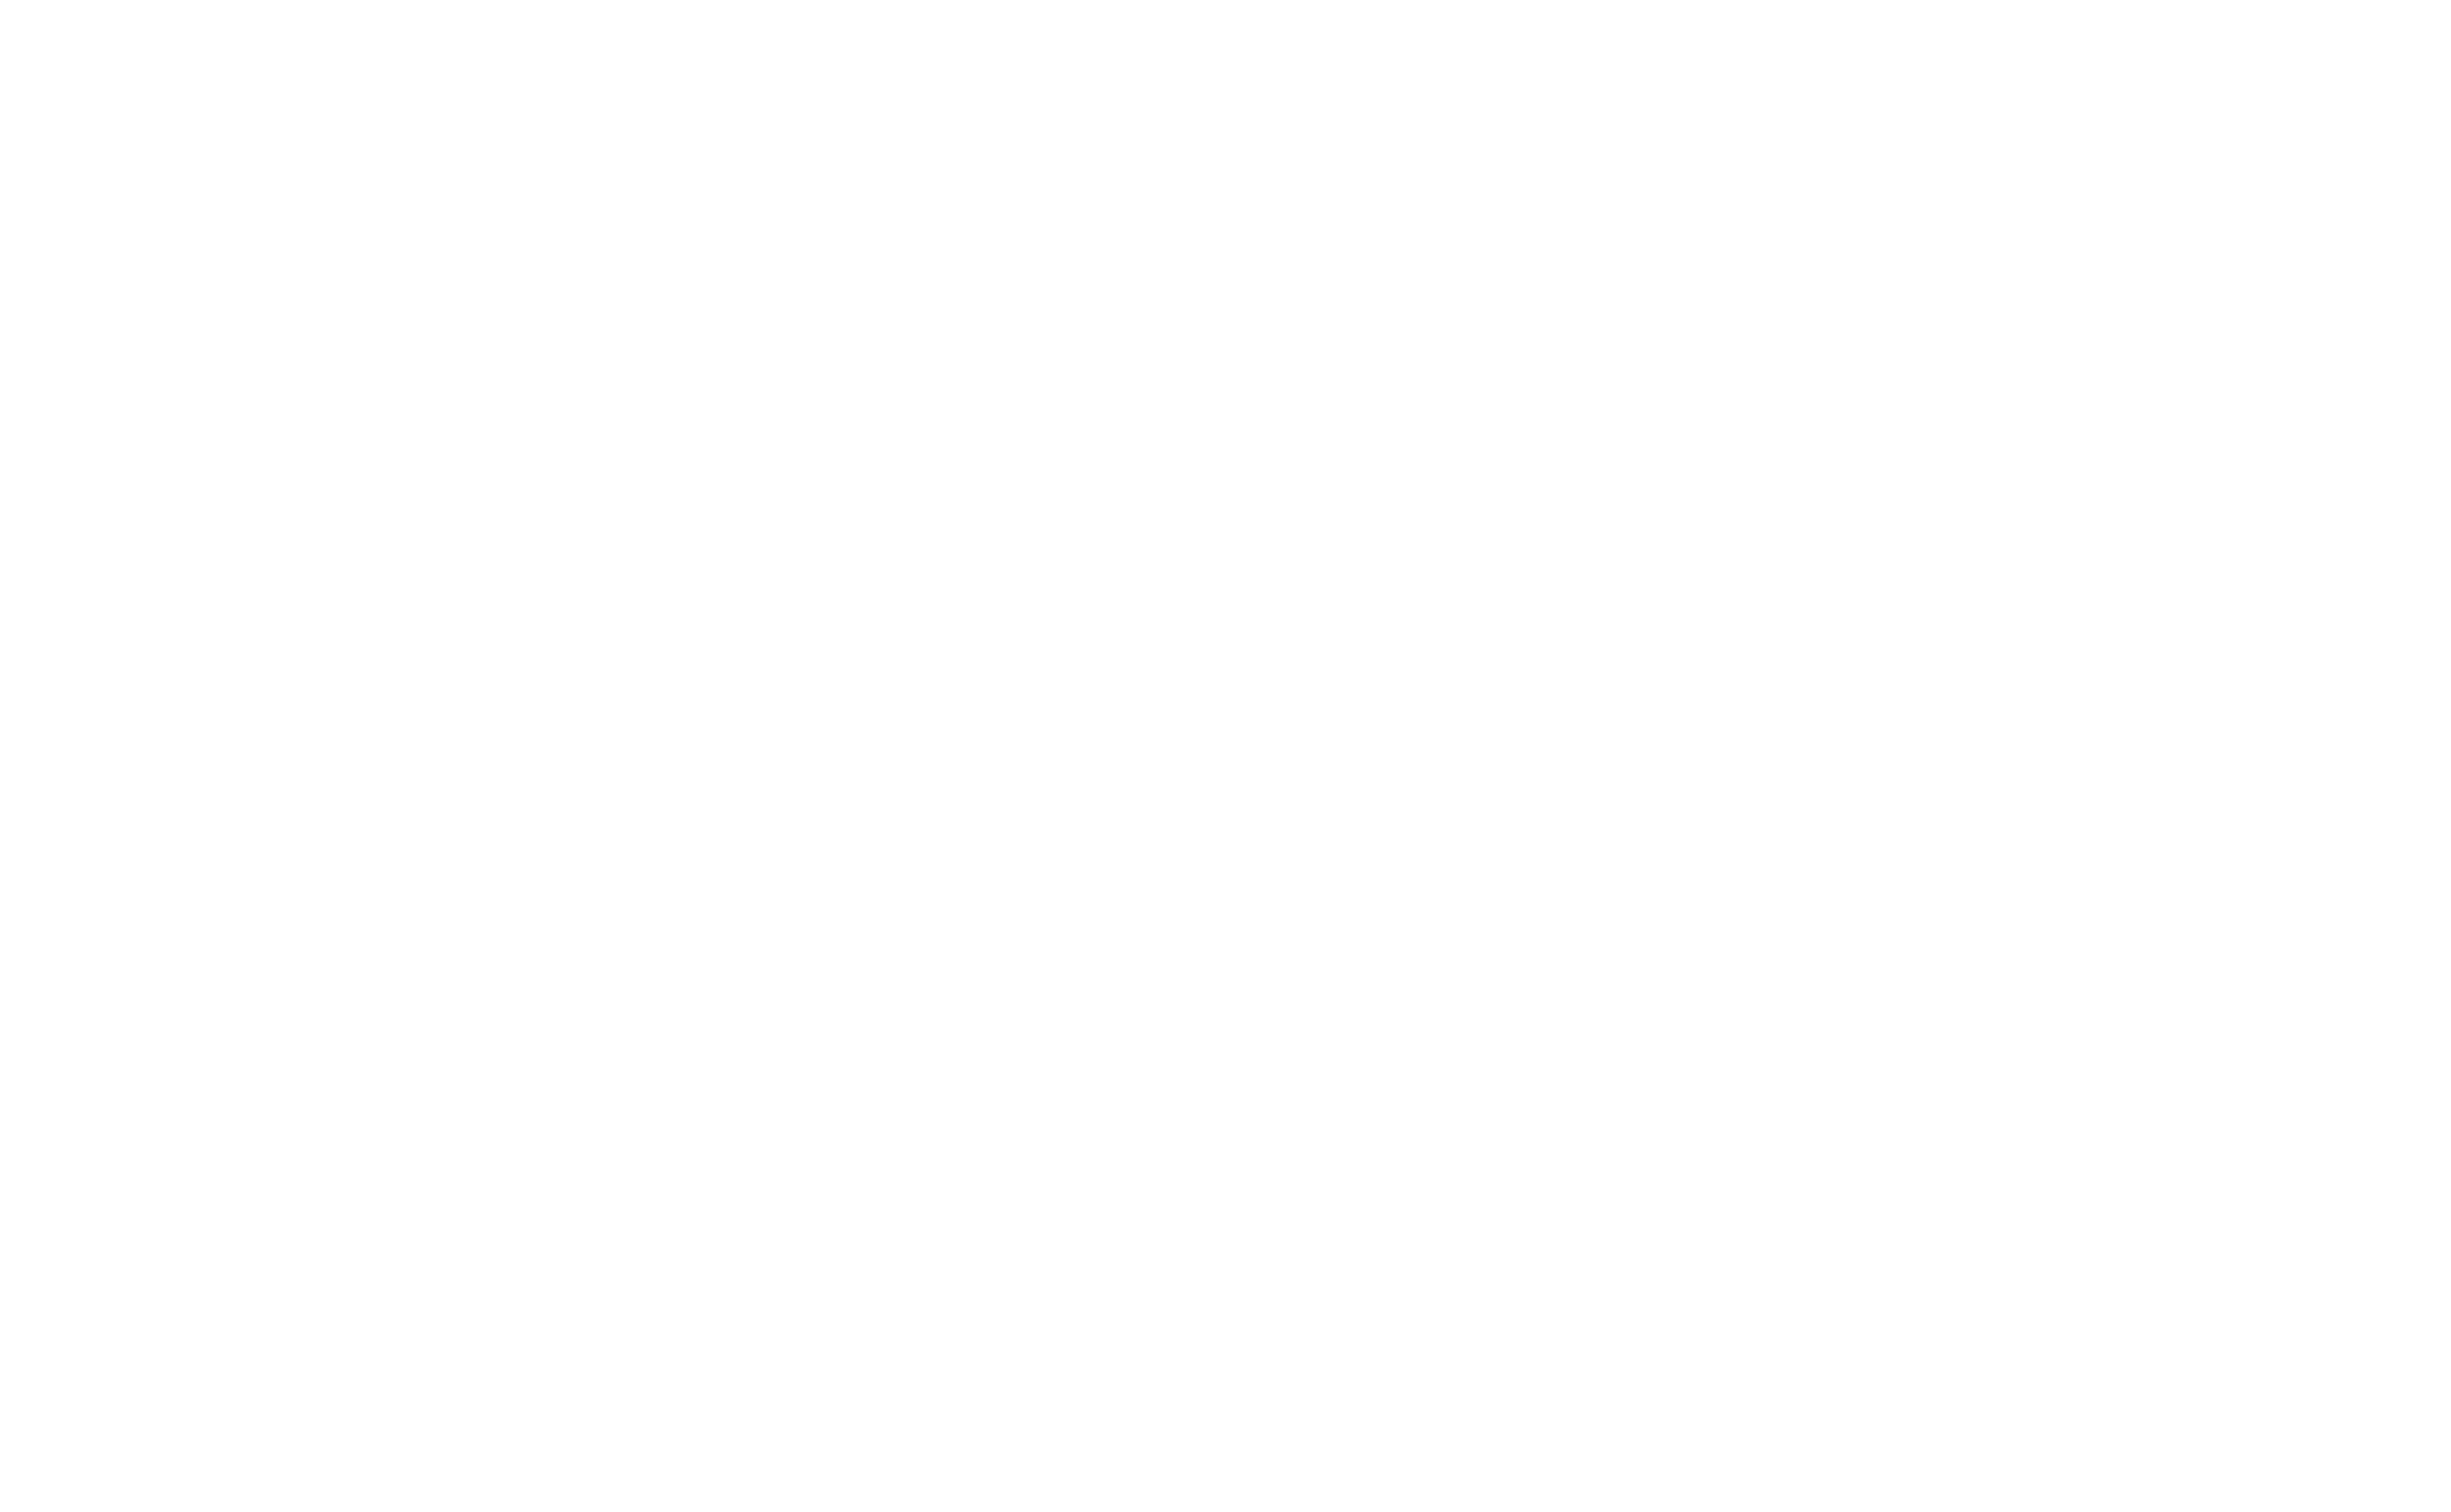 MarketingBytes.io